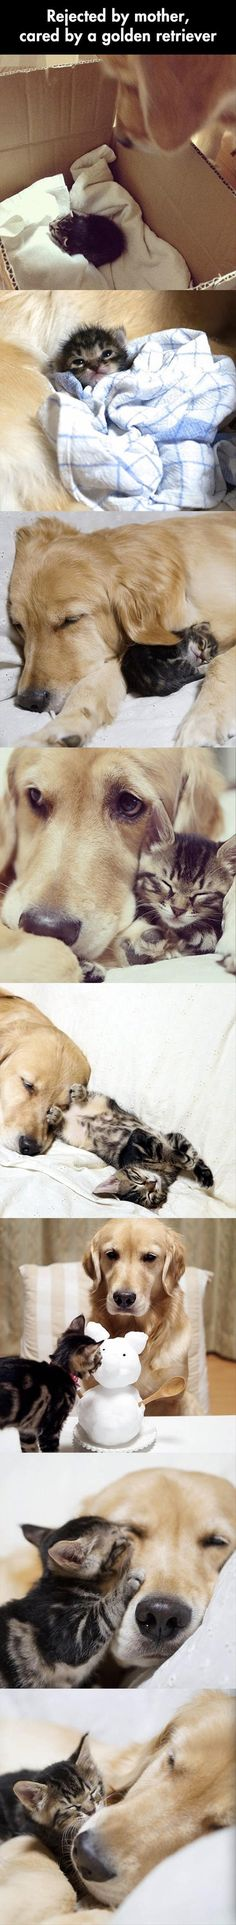 Funny Pictures – 69 Pics Have you ever noticed any pictures if cats raising abandoned puppies? Need I say more? Dogs rule!! :)